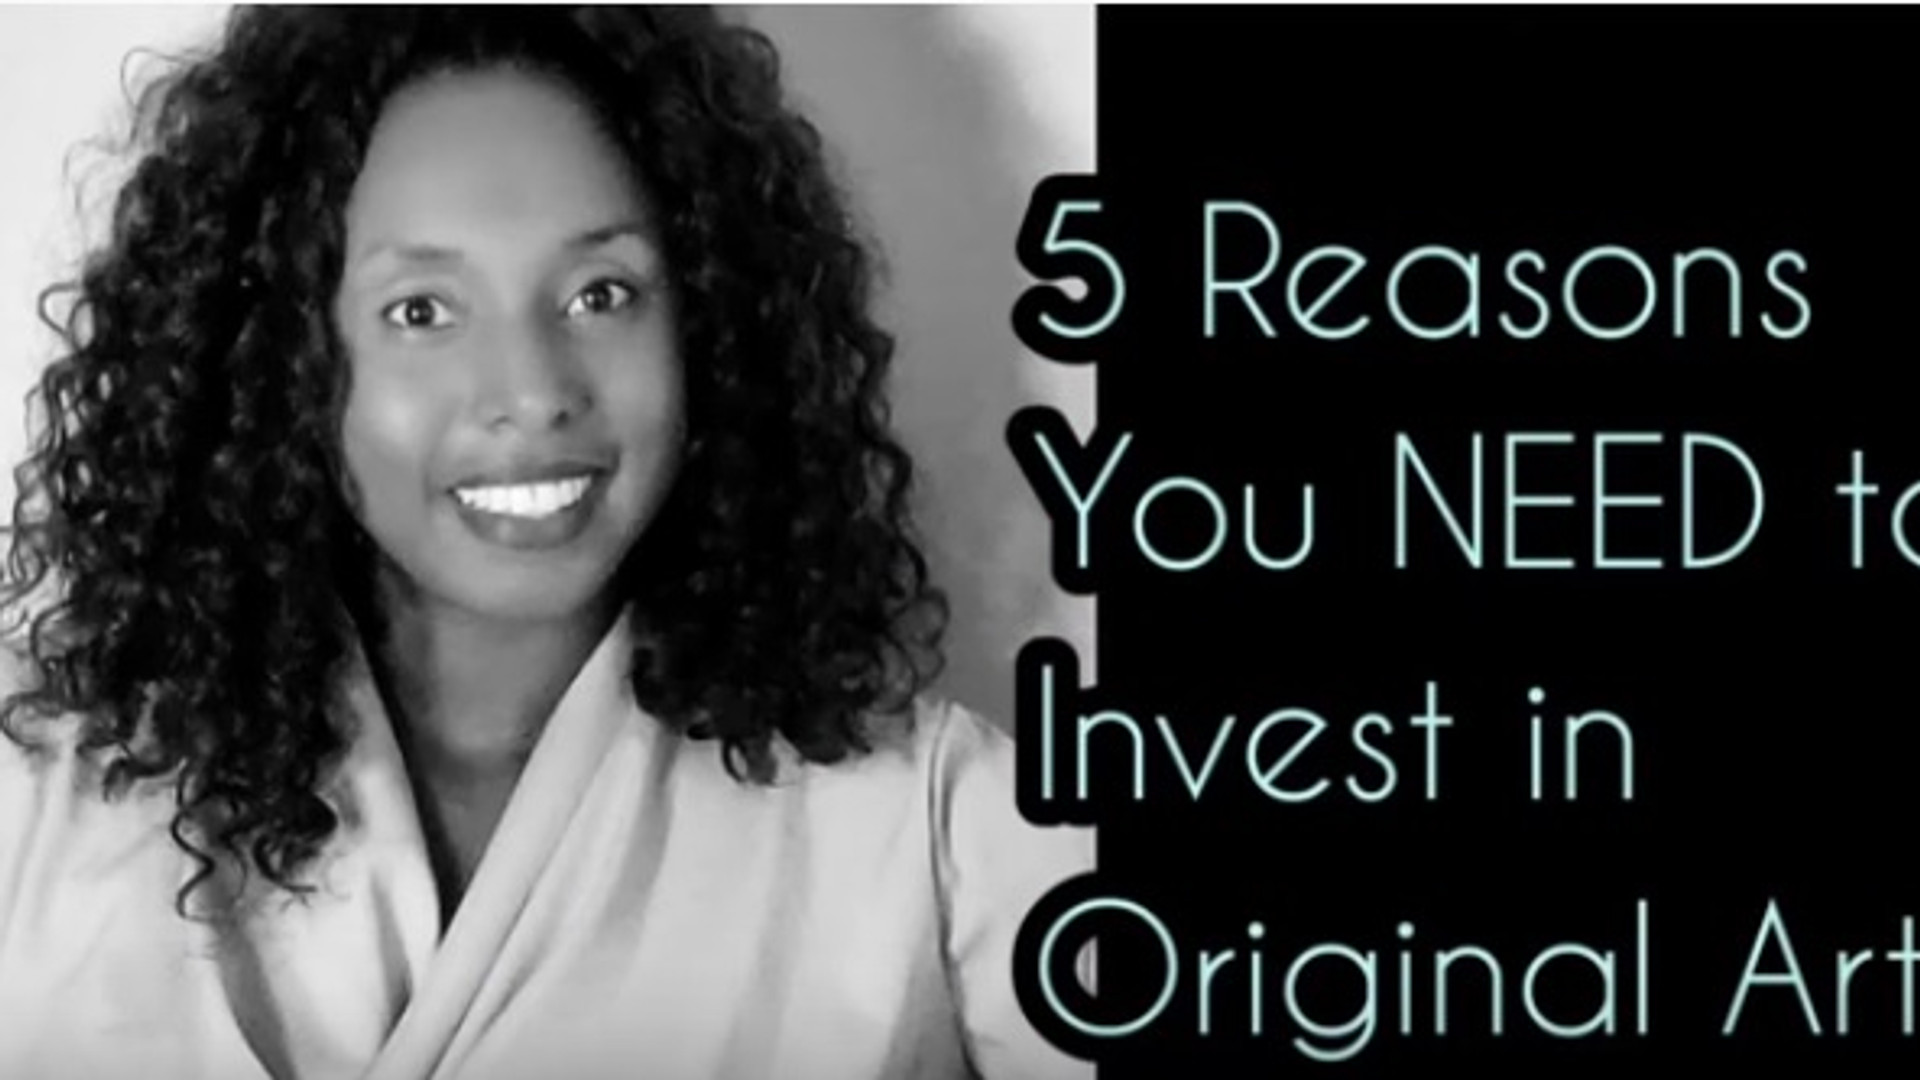 5 Reasons Why You Should Invest in Original Art